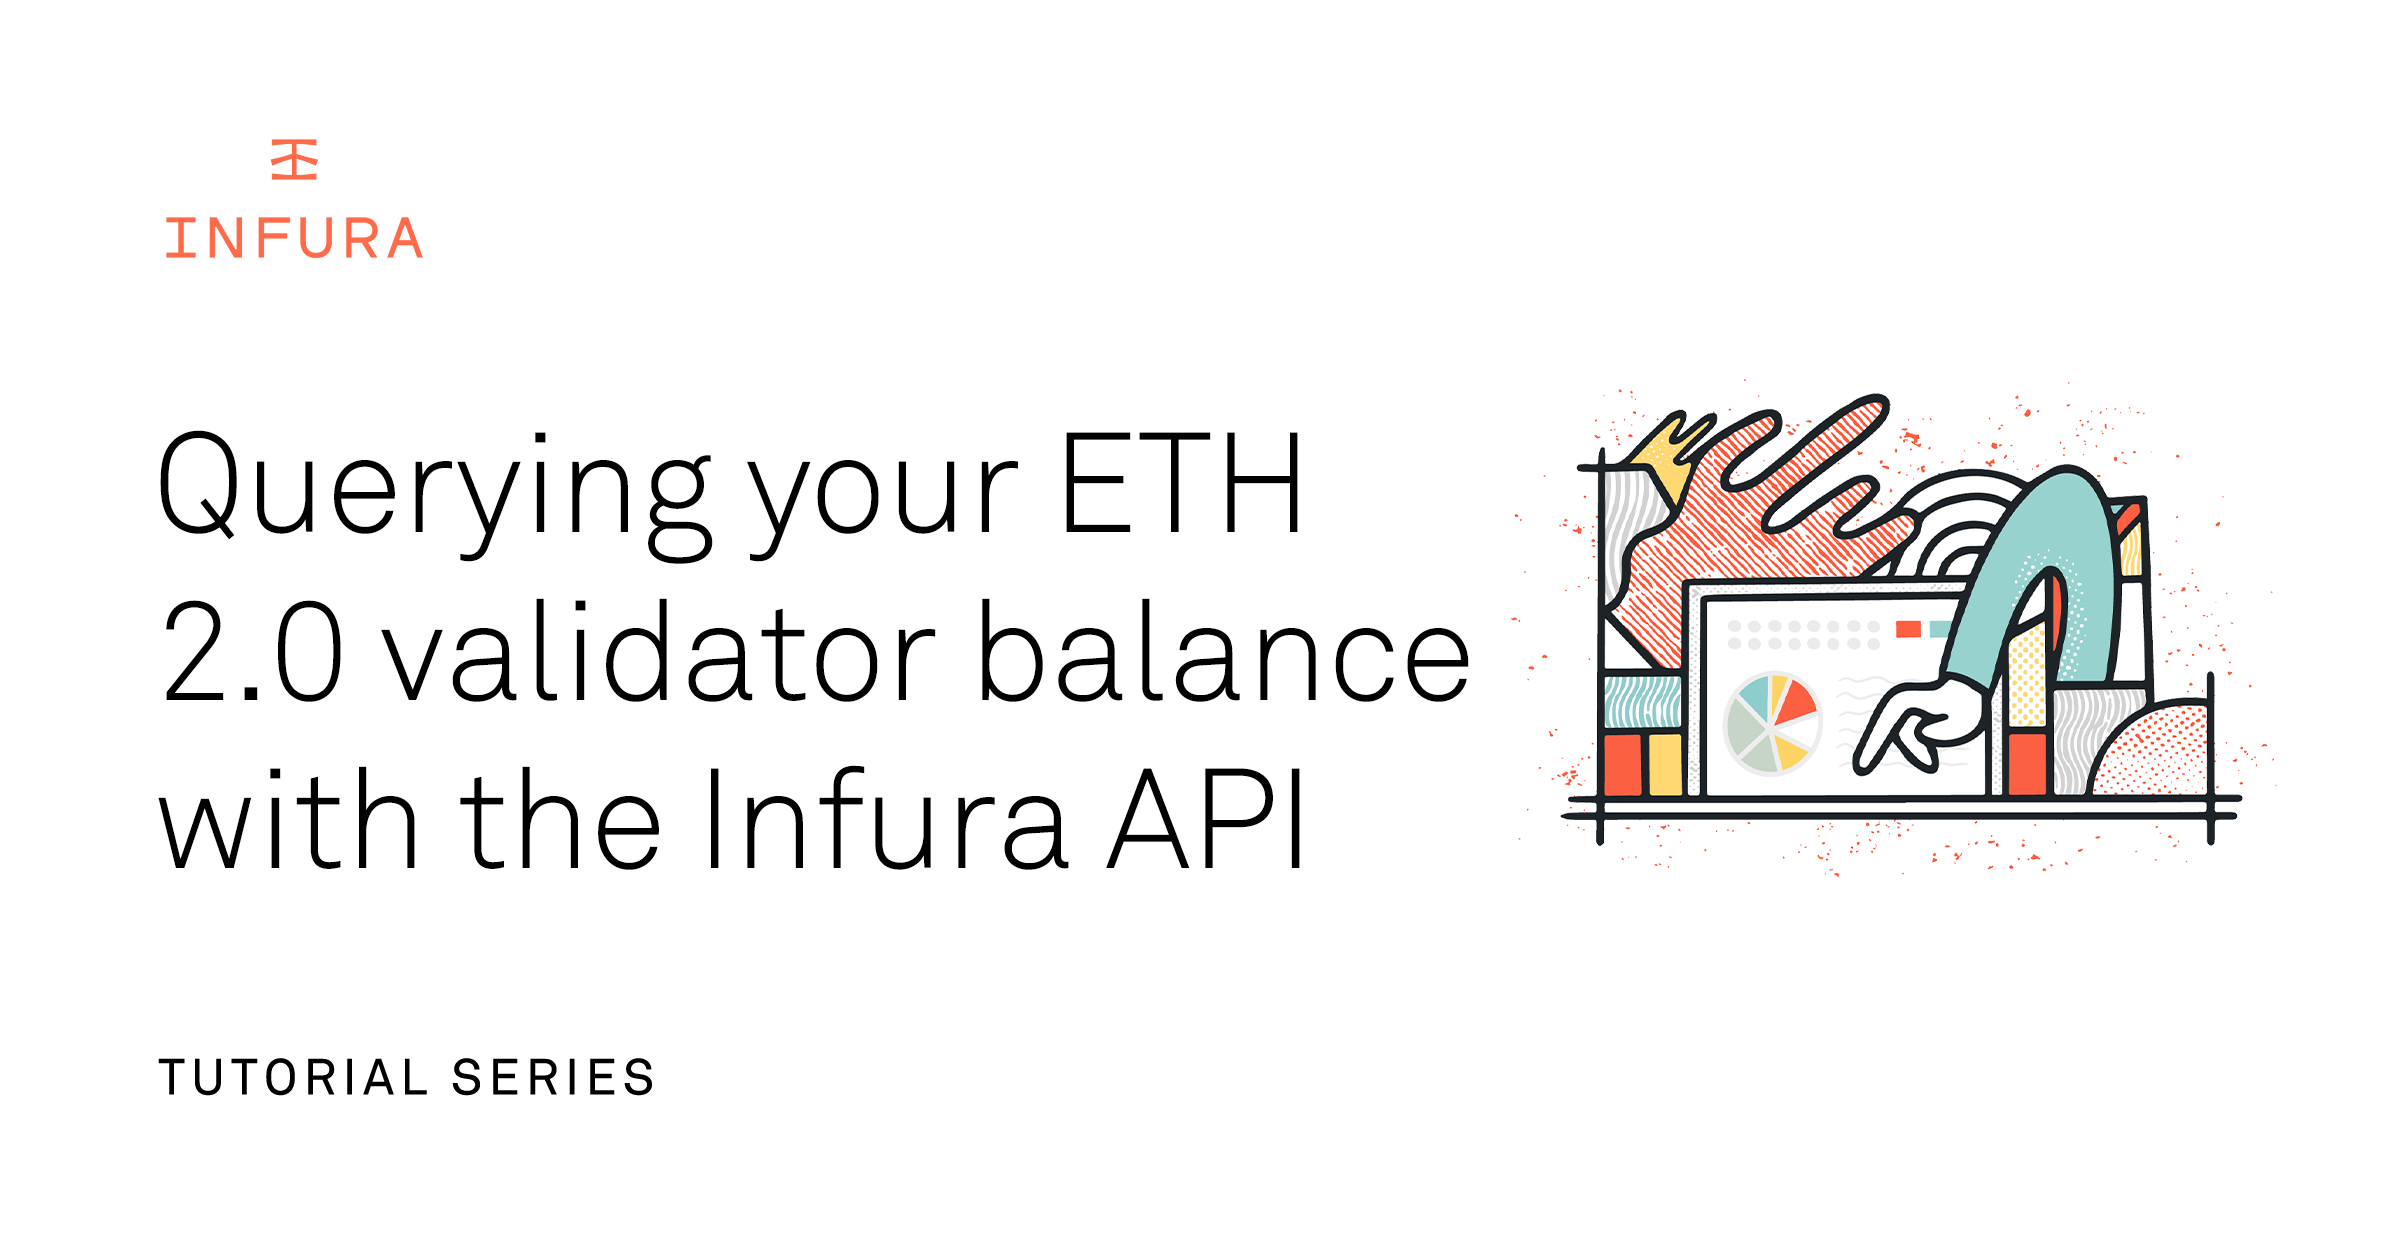 Tutorial: Querying your ETH 2.0 validator balance with the Infura API